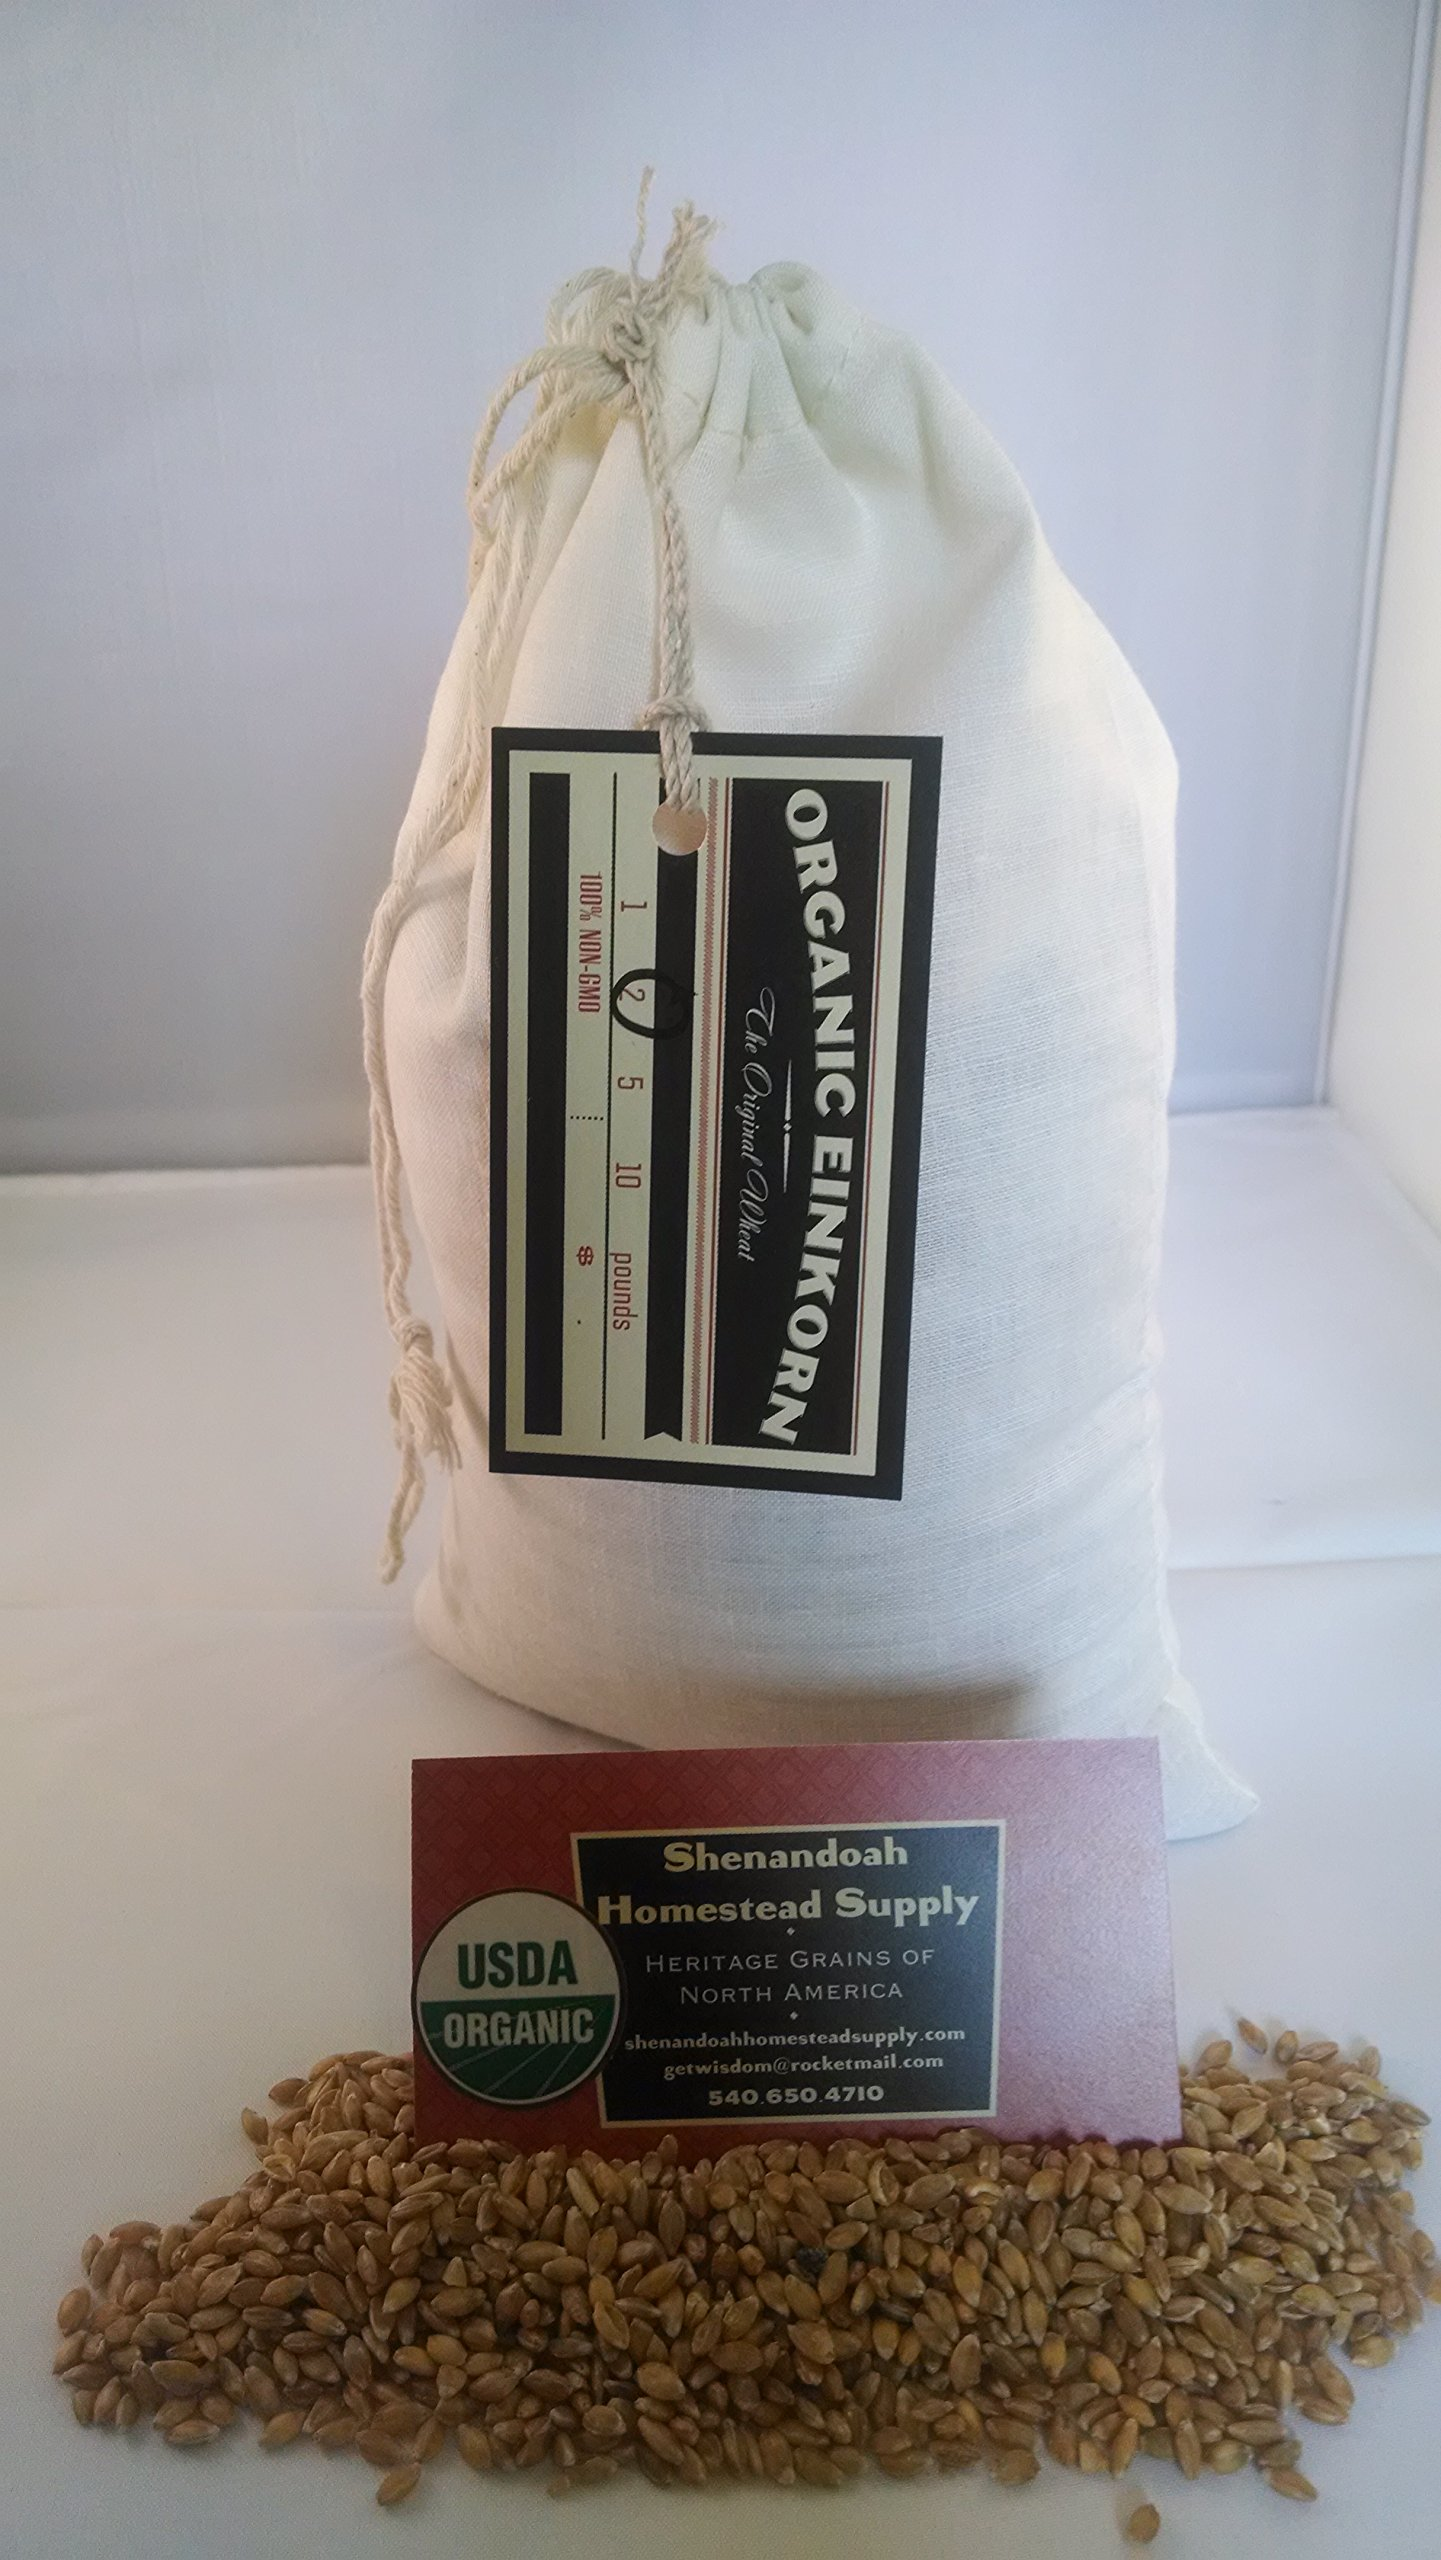 Organic Whole Grain Einkorn Flour, Fresh Stone-Ground & USA Grown, Heritage Grains of Shenandoah- great for gluten issues (2 pounds)